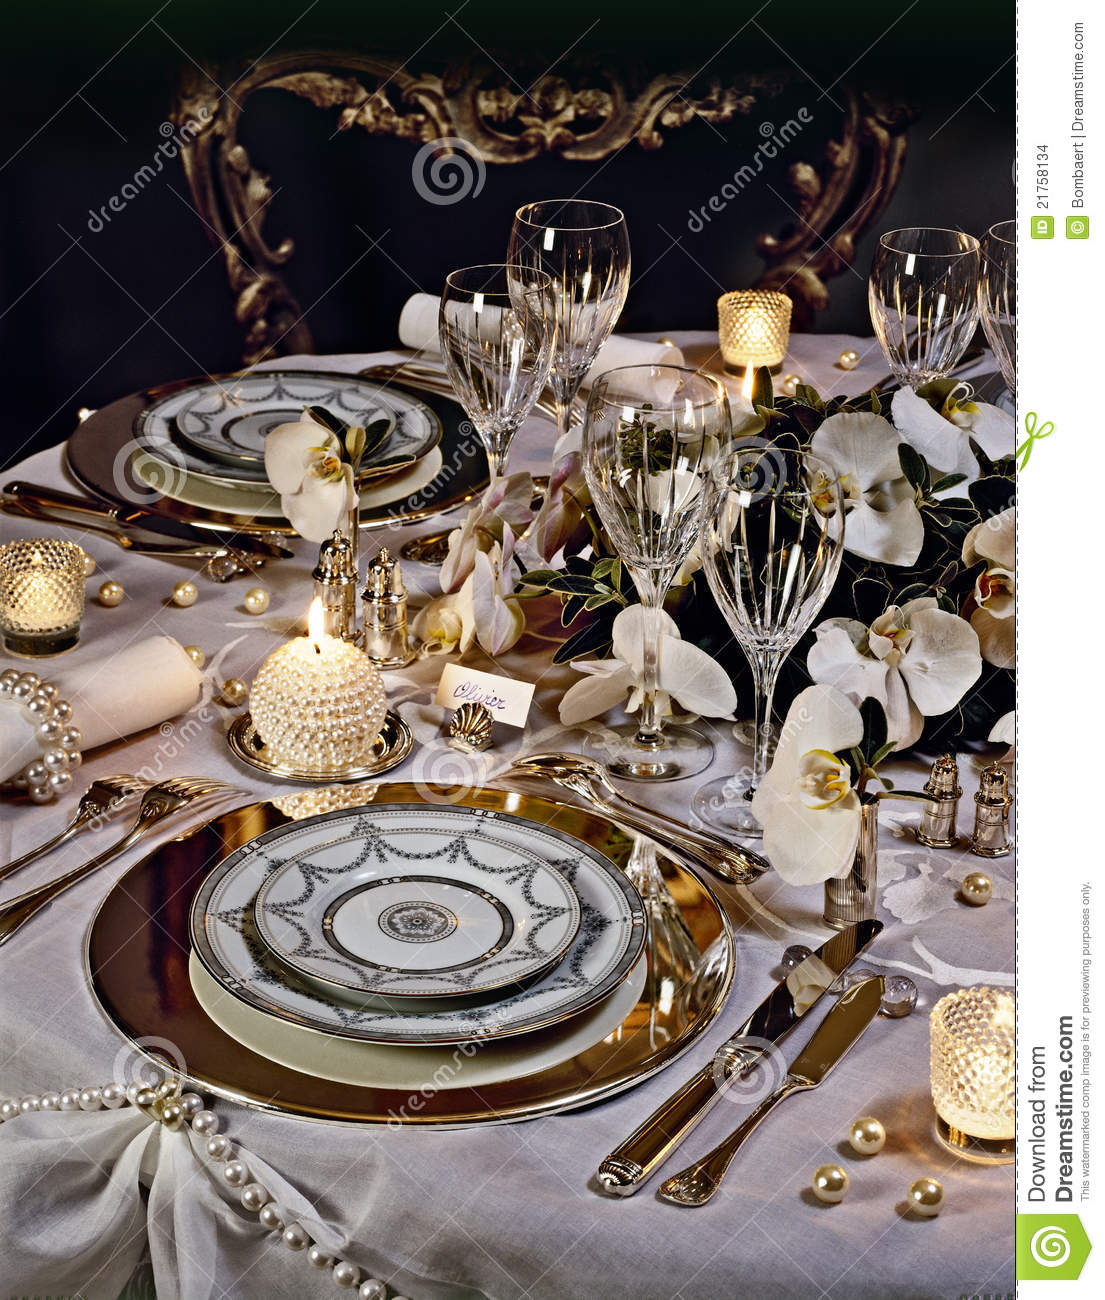 Christmas Tables Decorated A Decorated Christmas Dining Table Stock Photo Image Of